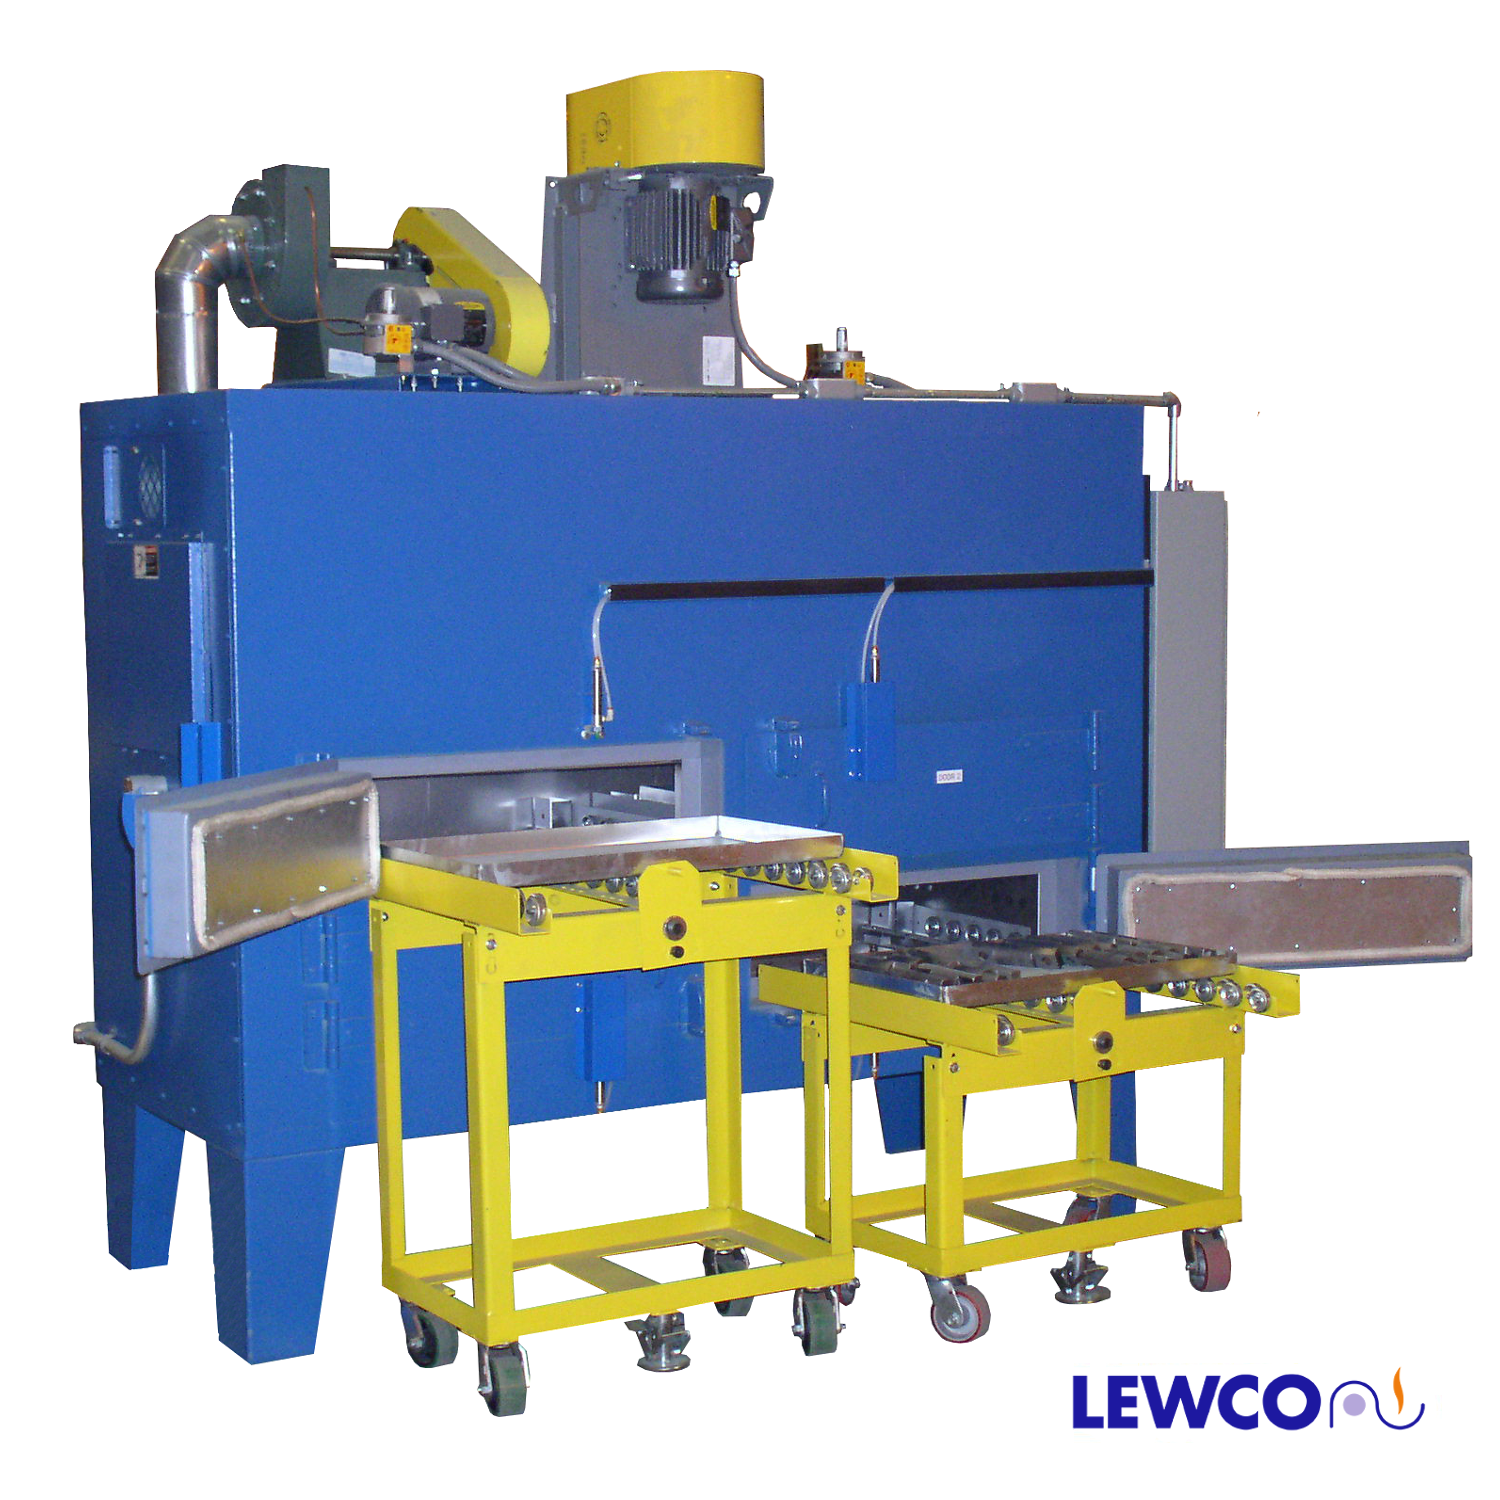 Custom Electric Drawer Cabinet Oven – Lewco Ovens